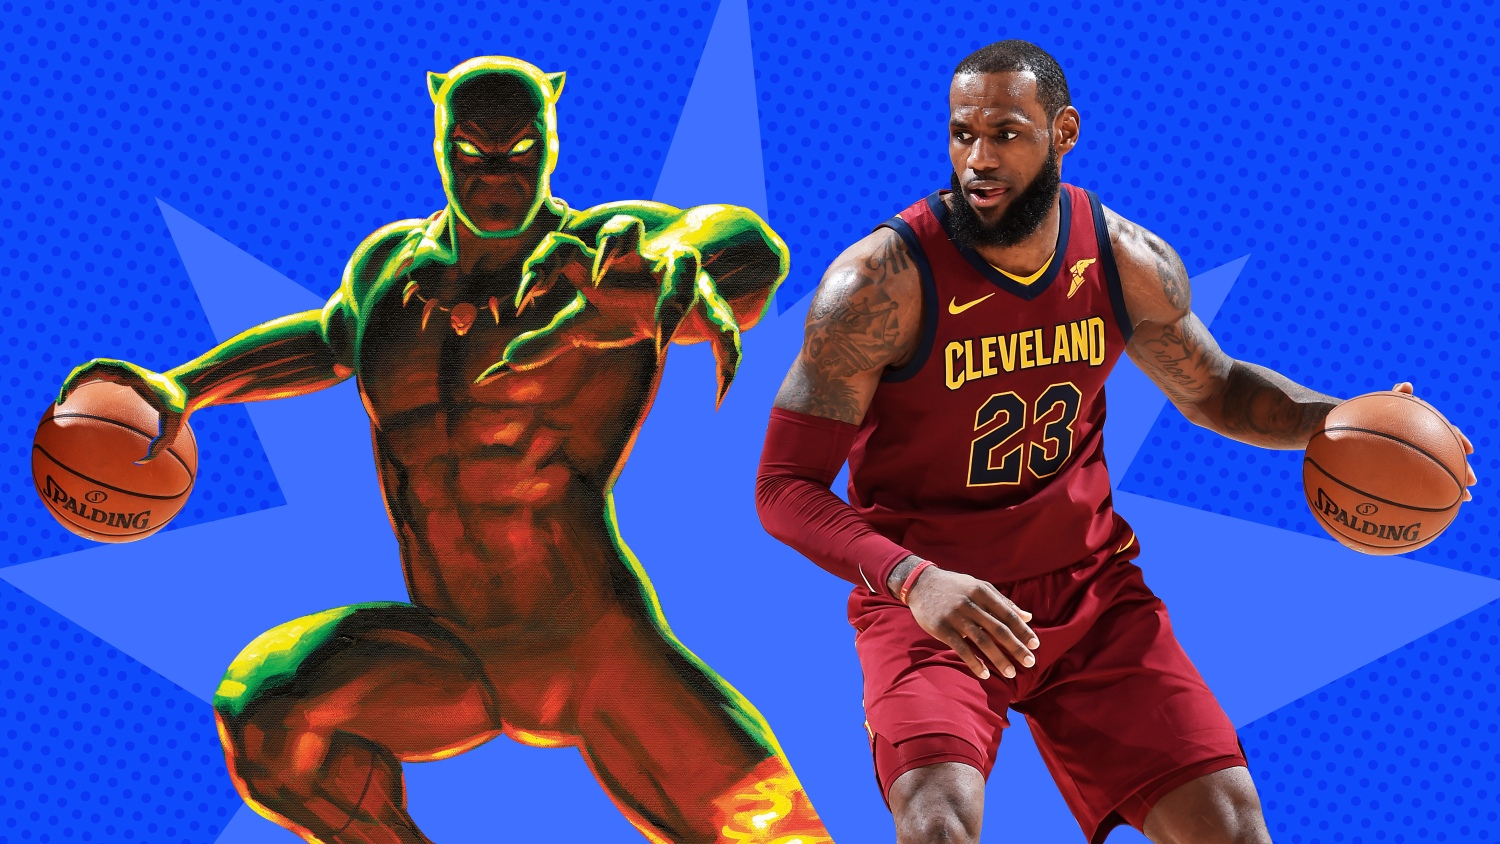 673dda902aec King James is king of Wakanda as NBA WNBA players meet their Marvel matches